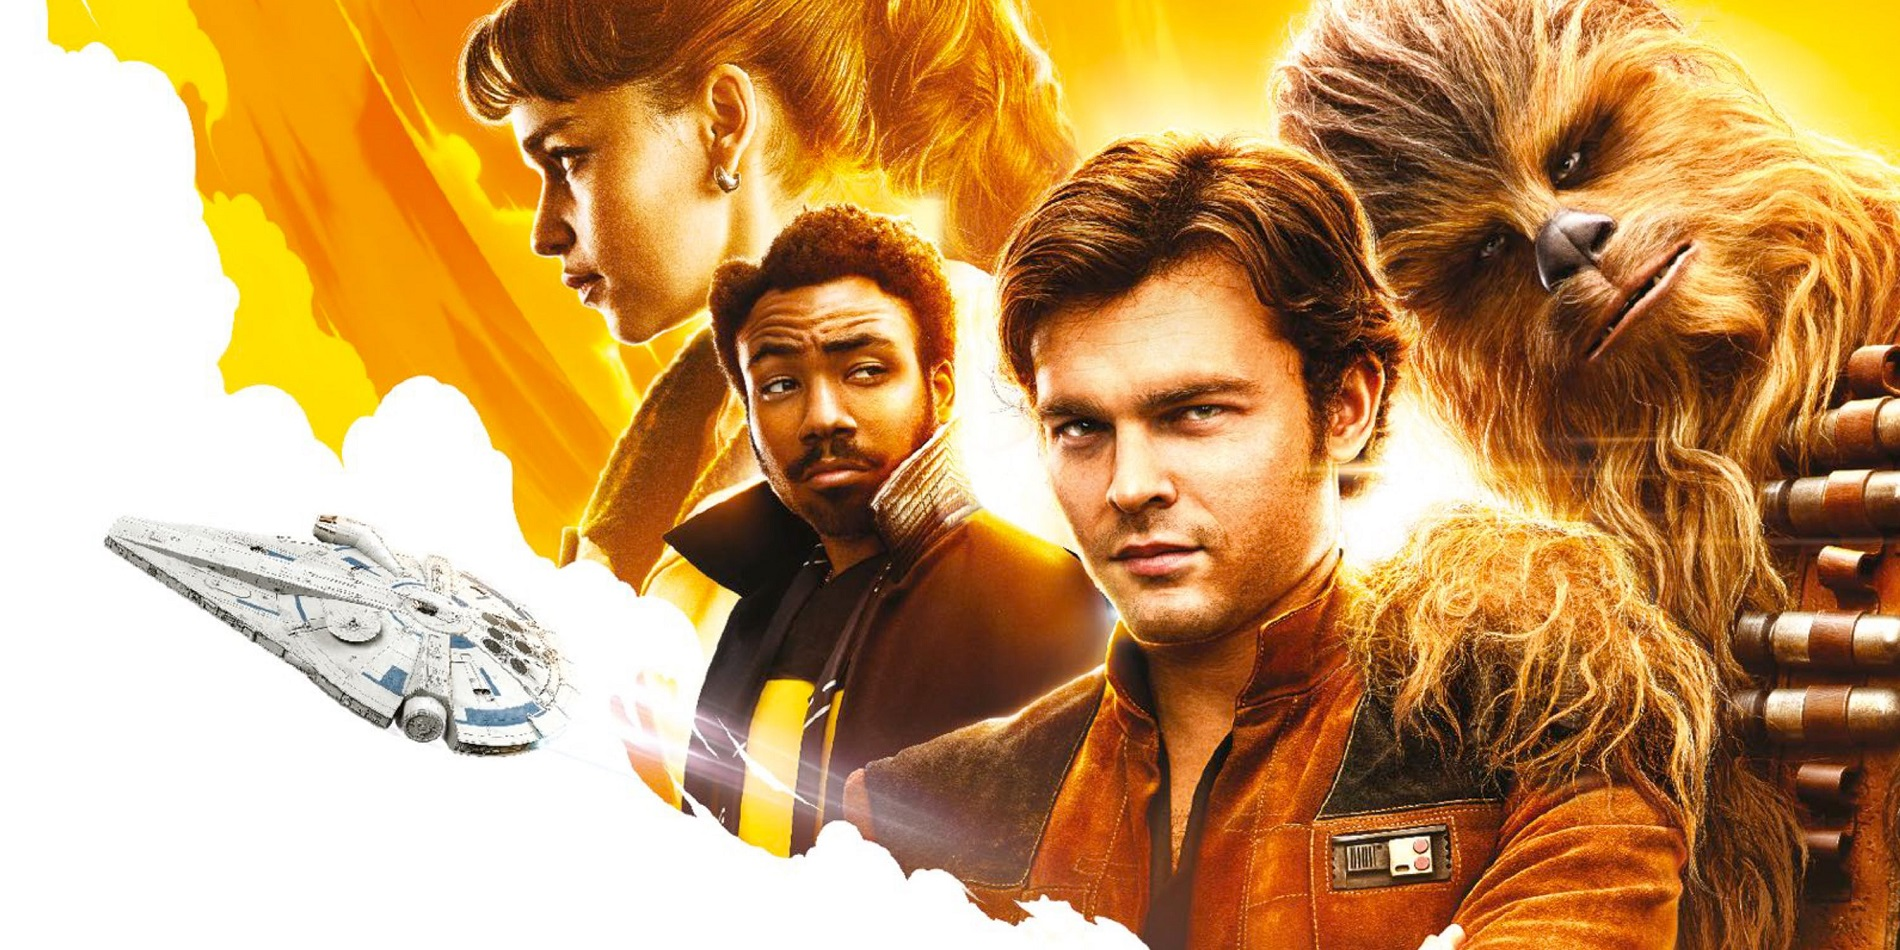 Solo's sequels depend on 'fan reaction,' and it's looking good screenshot